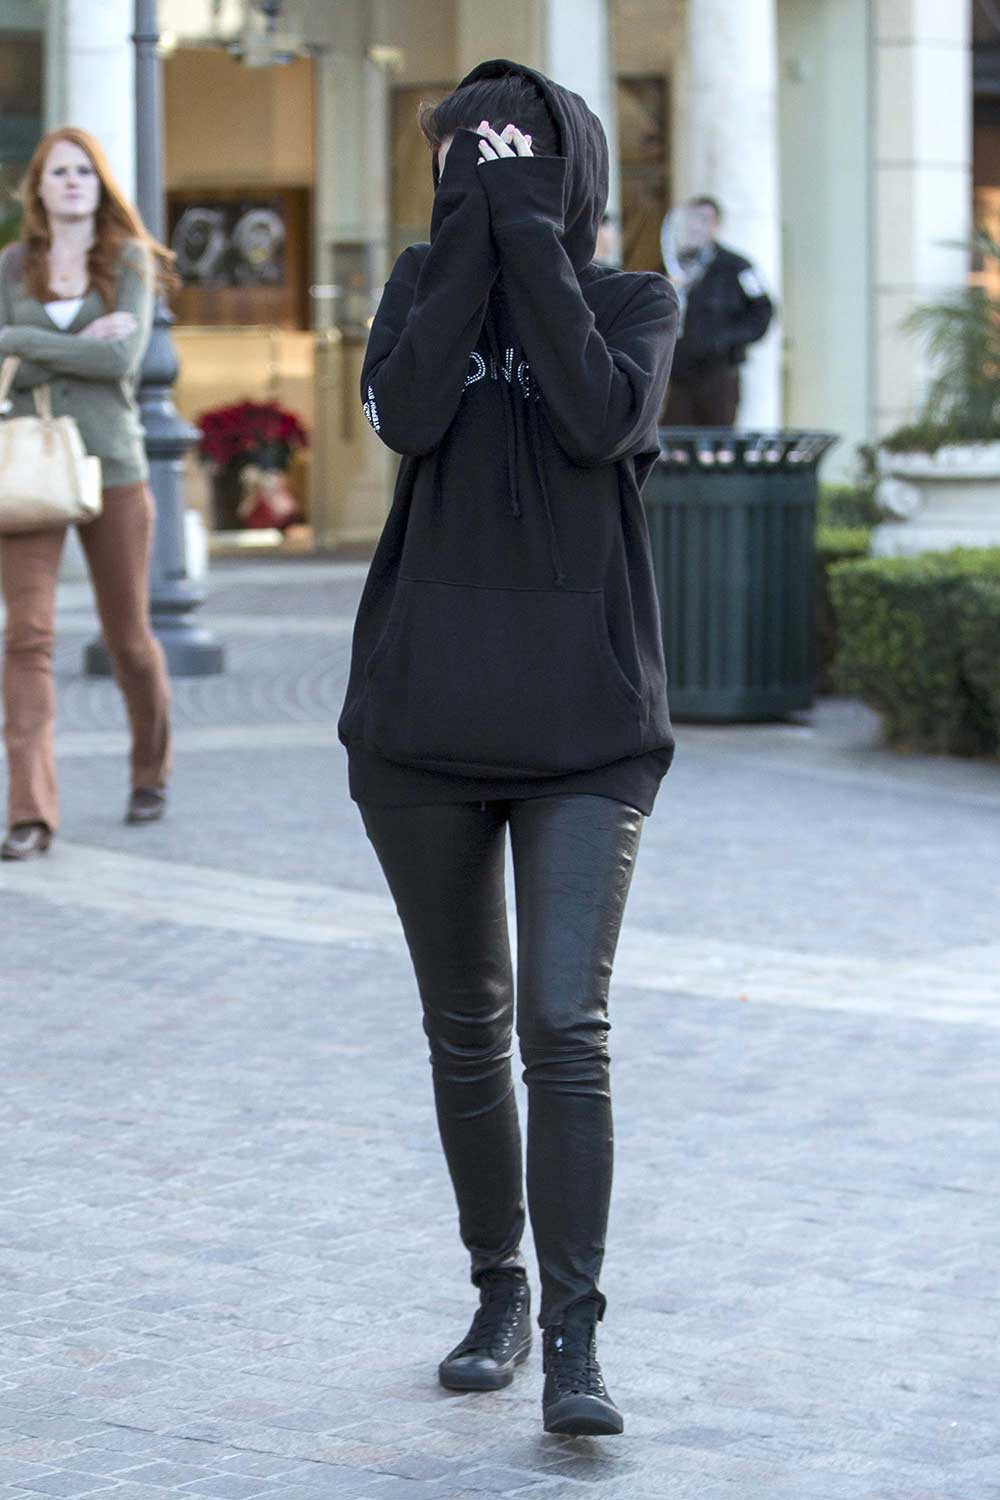 Kylie Jenner Covers her face after picking out jewelry